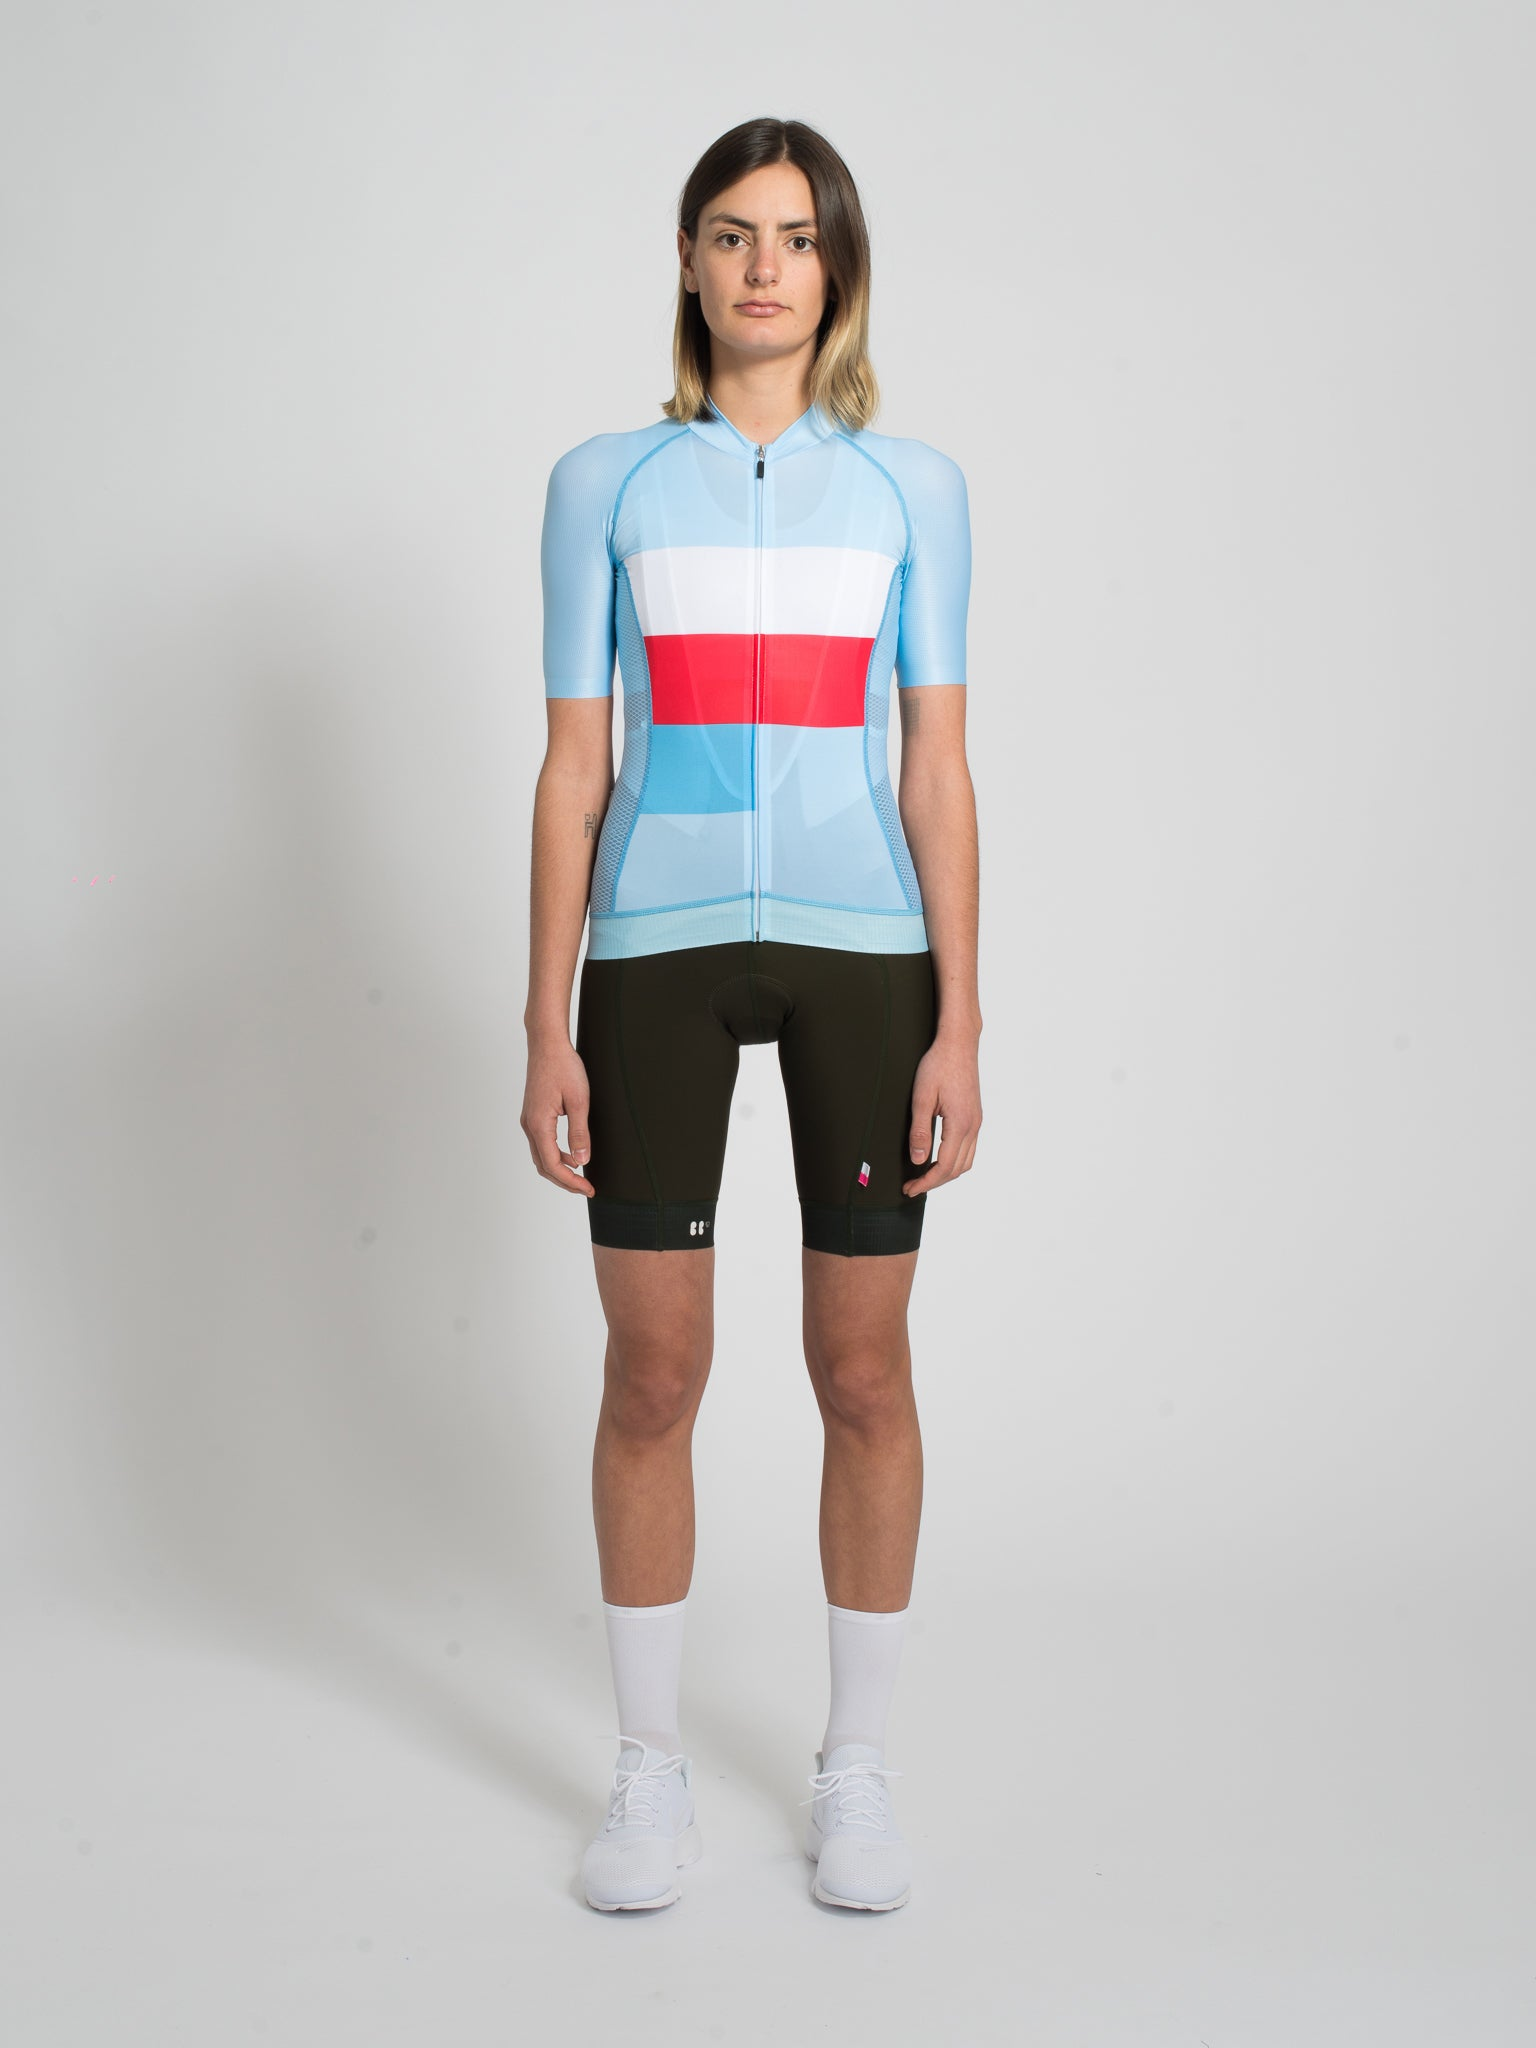 Cotton Candy Jersey Women